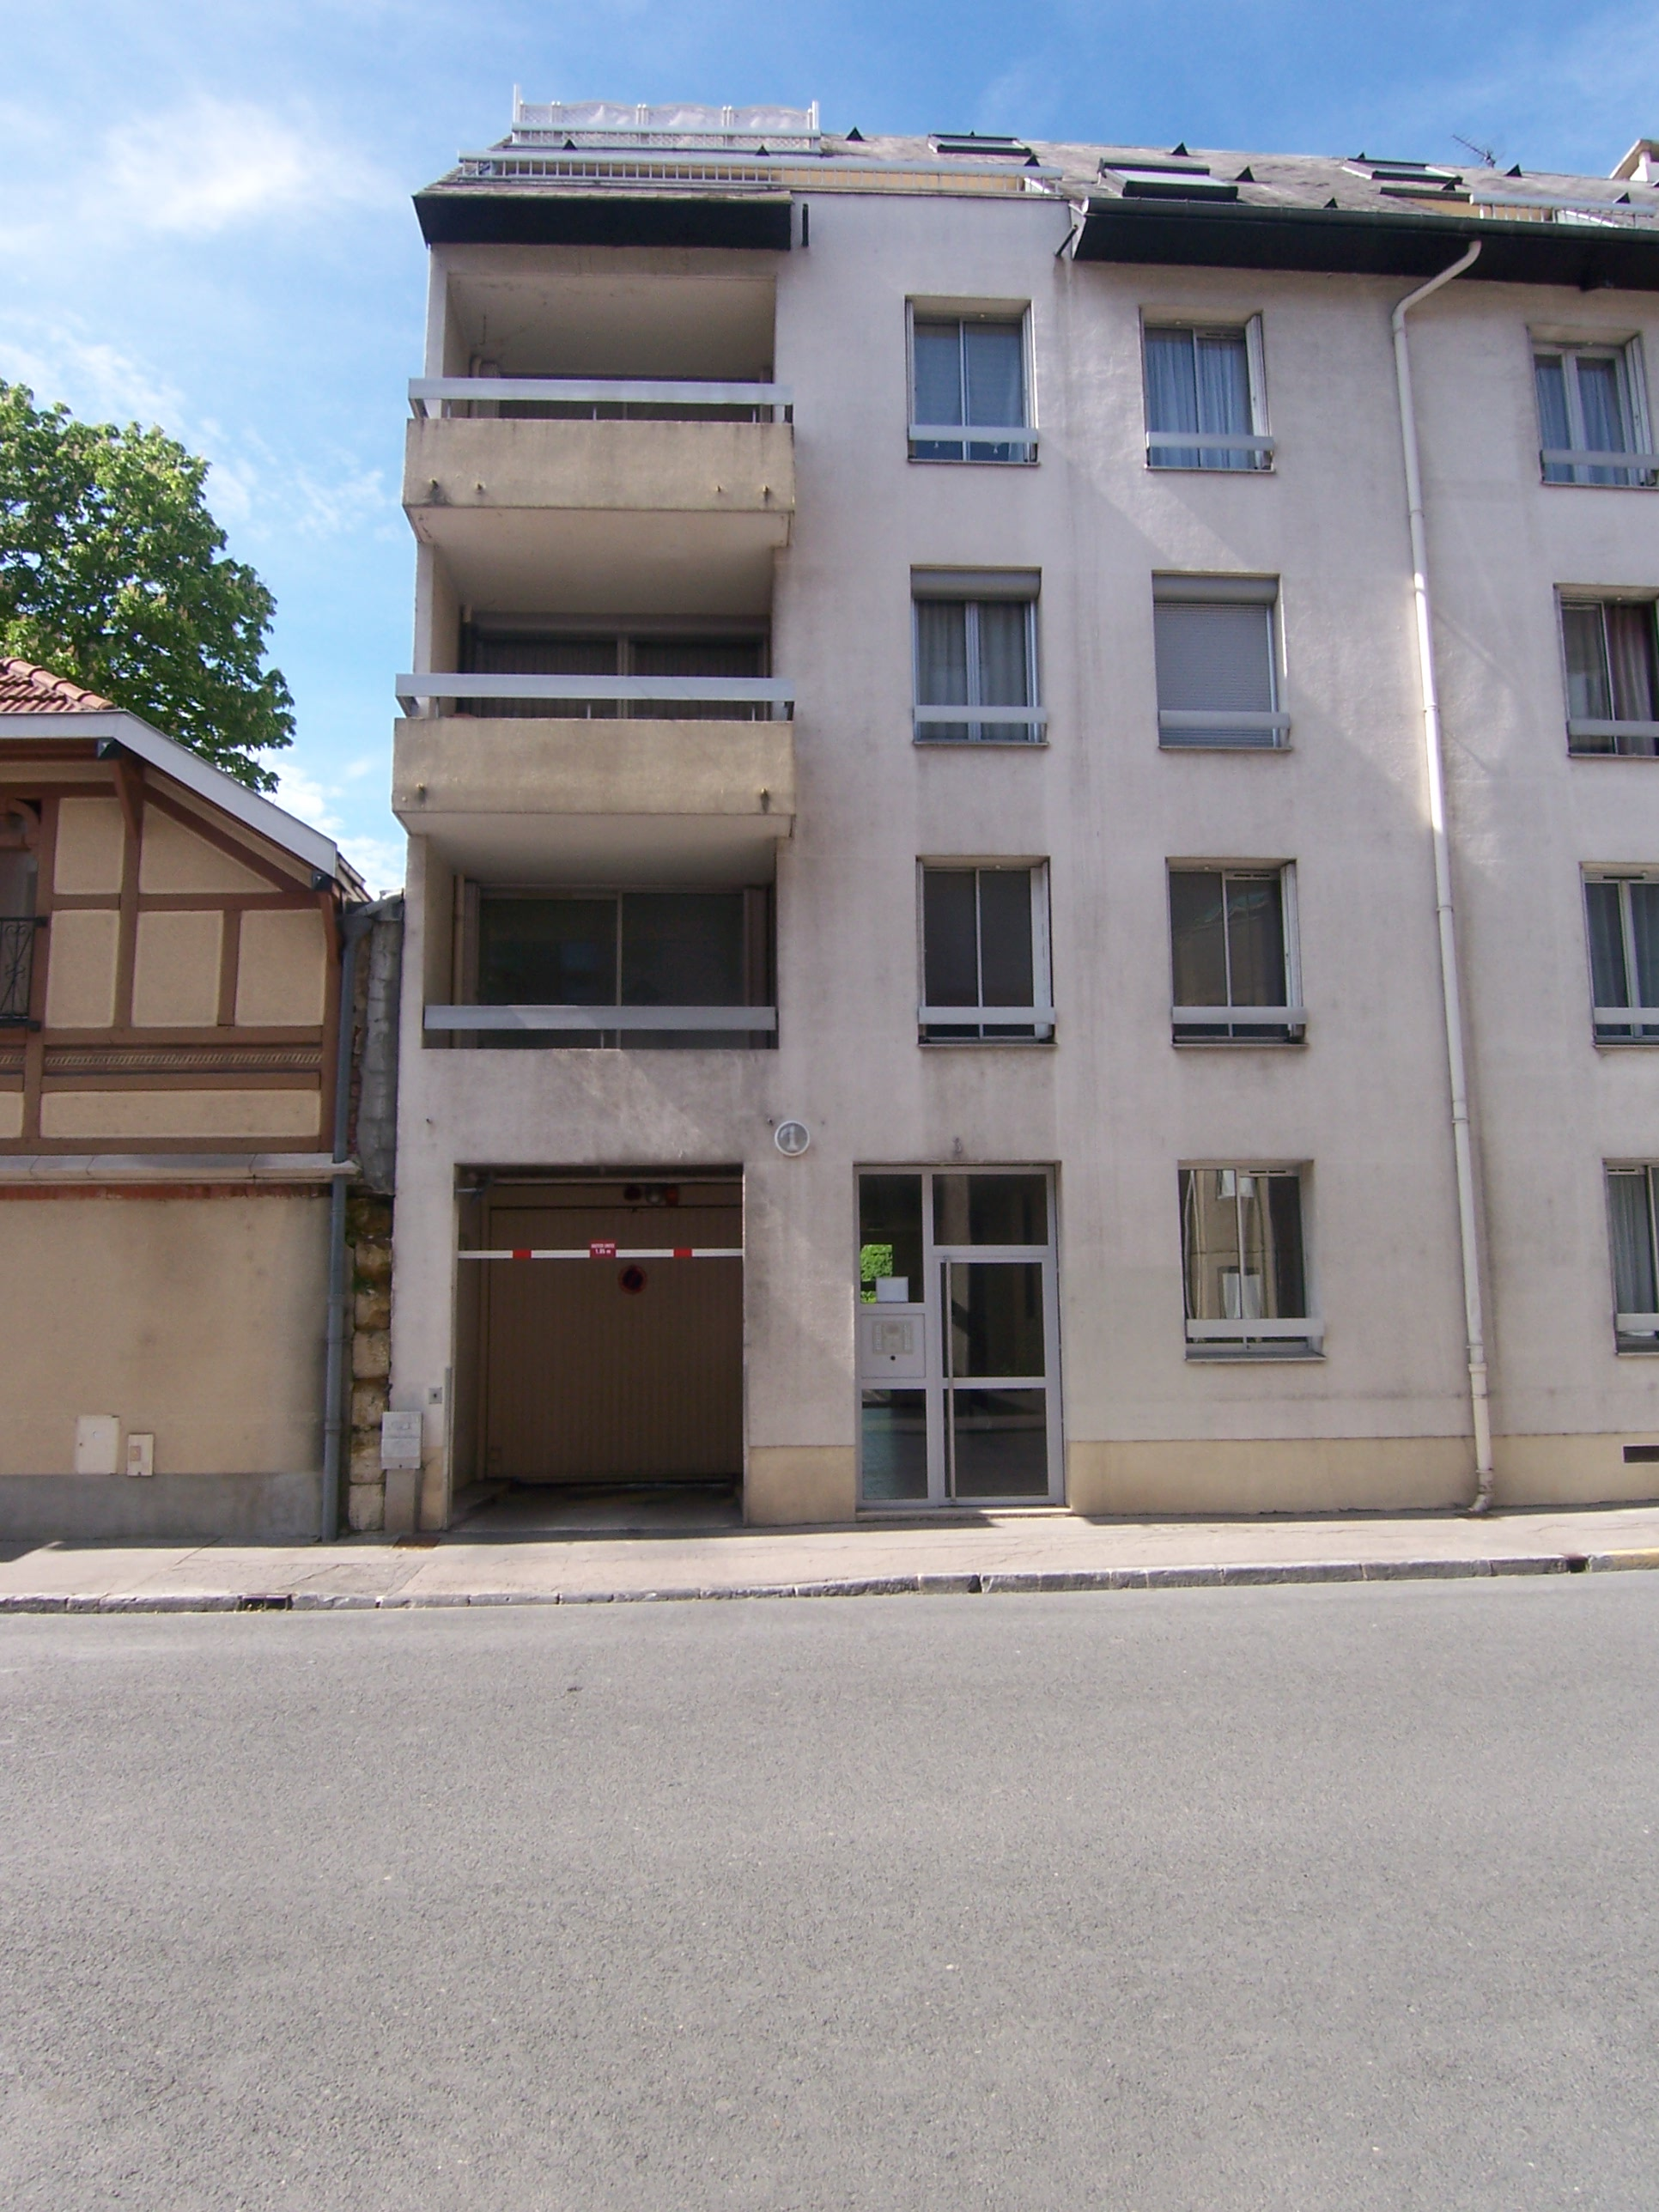 Guy hoquet agence immobili re reims 51100 immobilier 51 for Reims agence